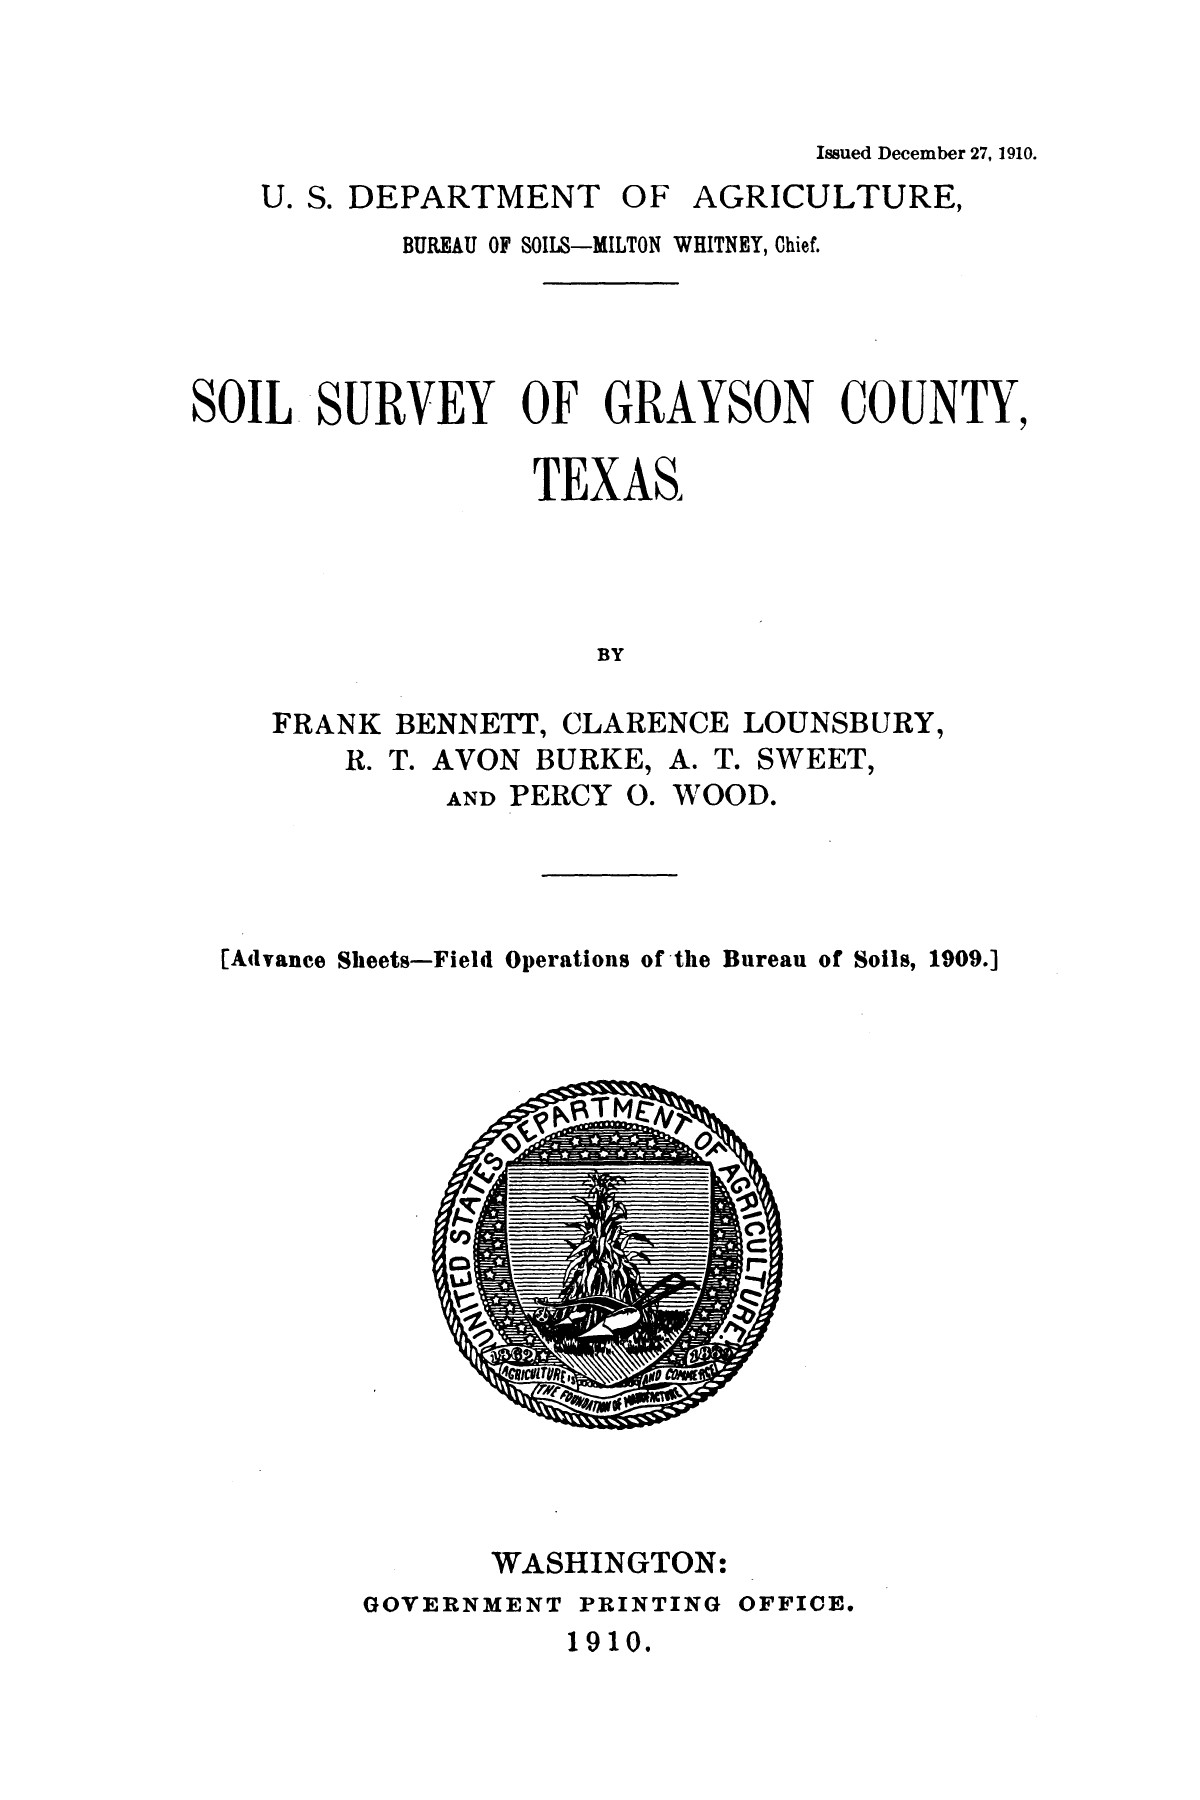 Soil survey of Grayson County, Texas                                                                                                      [Sequence #]: 1 of 39